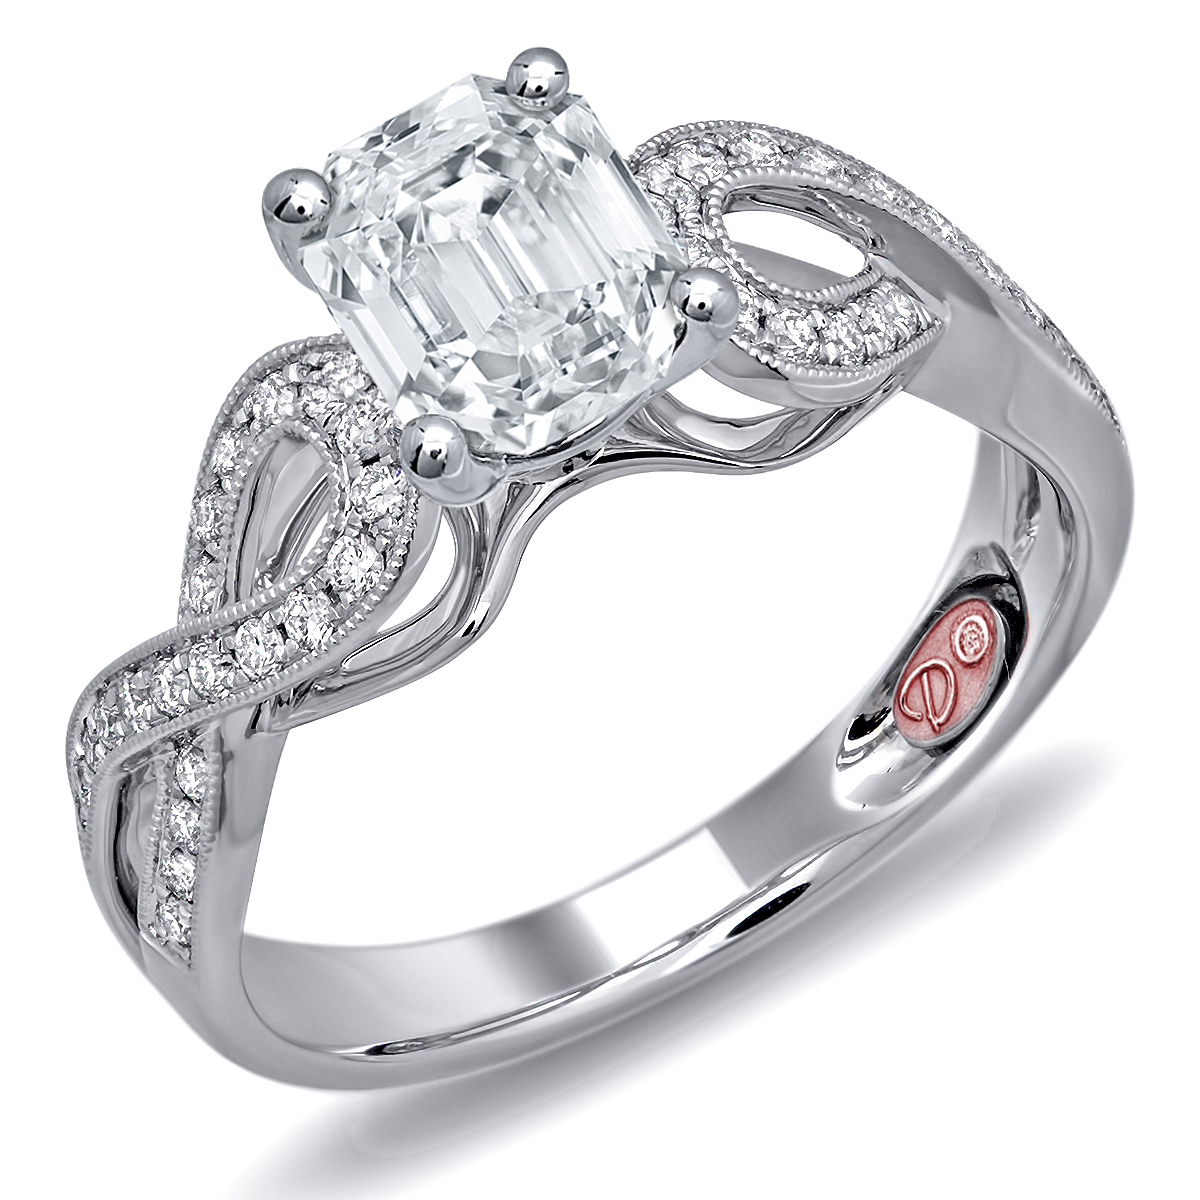 Designer Bridal Rings